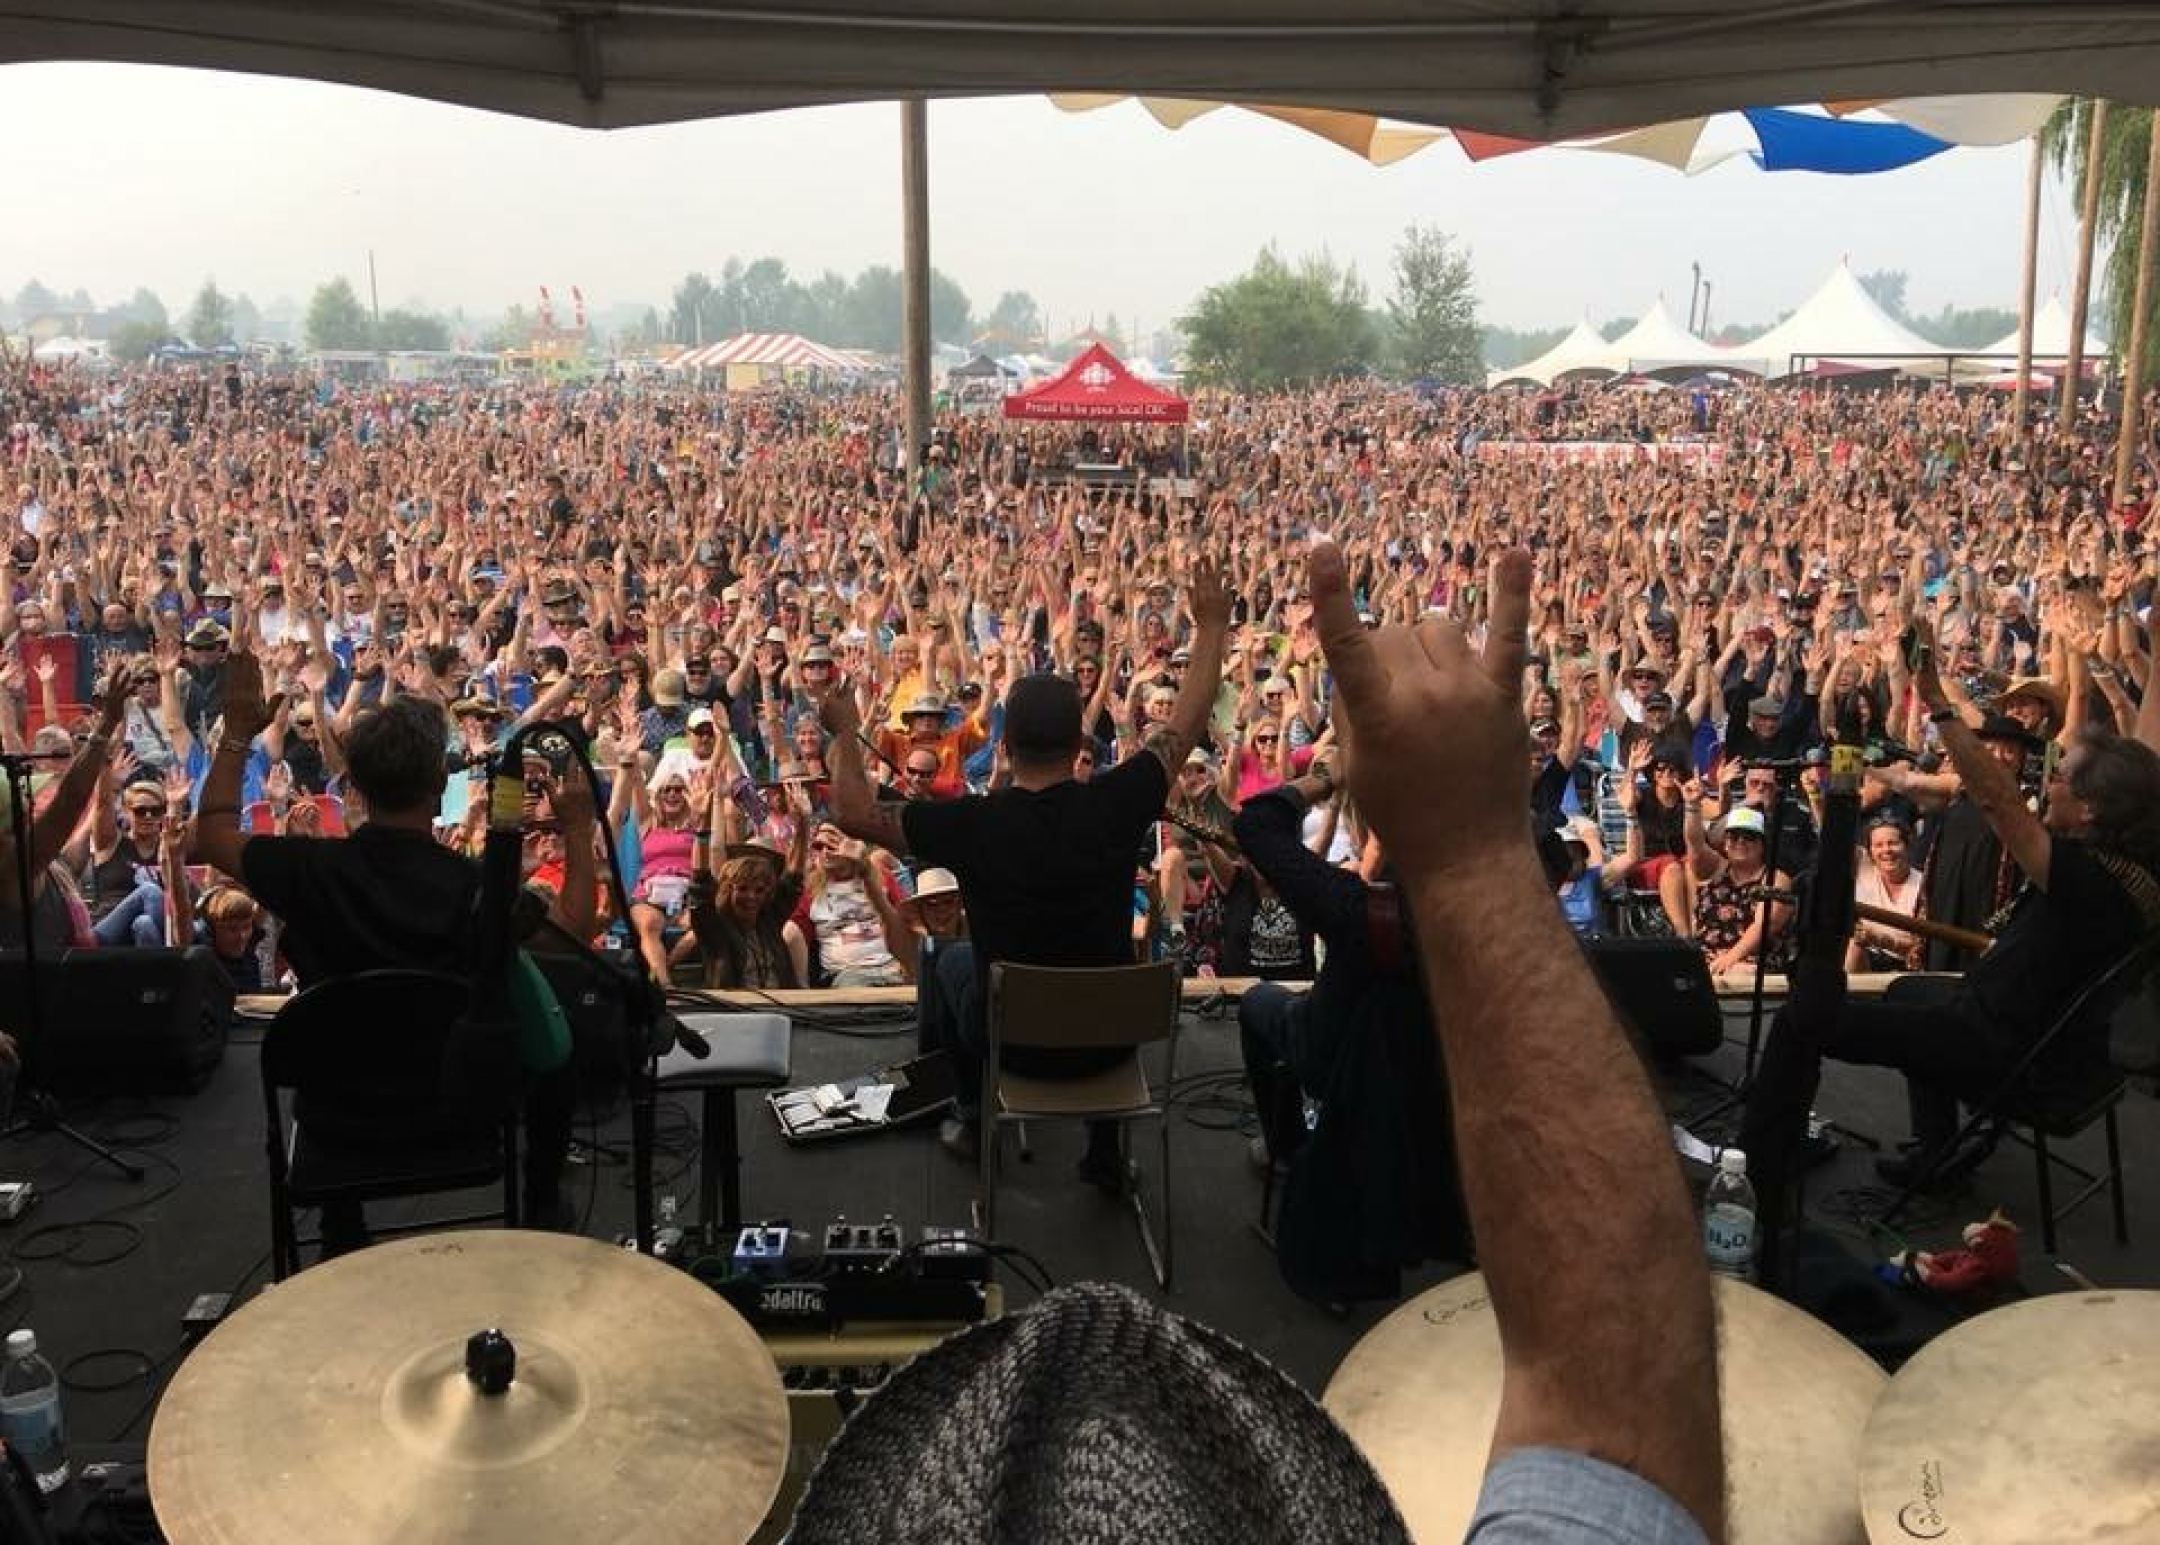 CBC Blues Stage_epic crowd